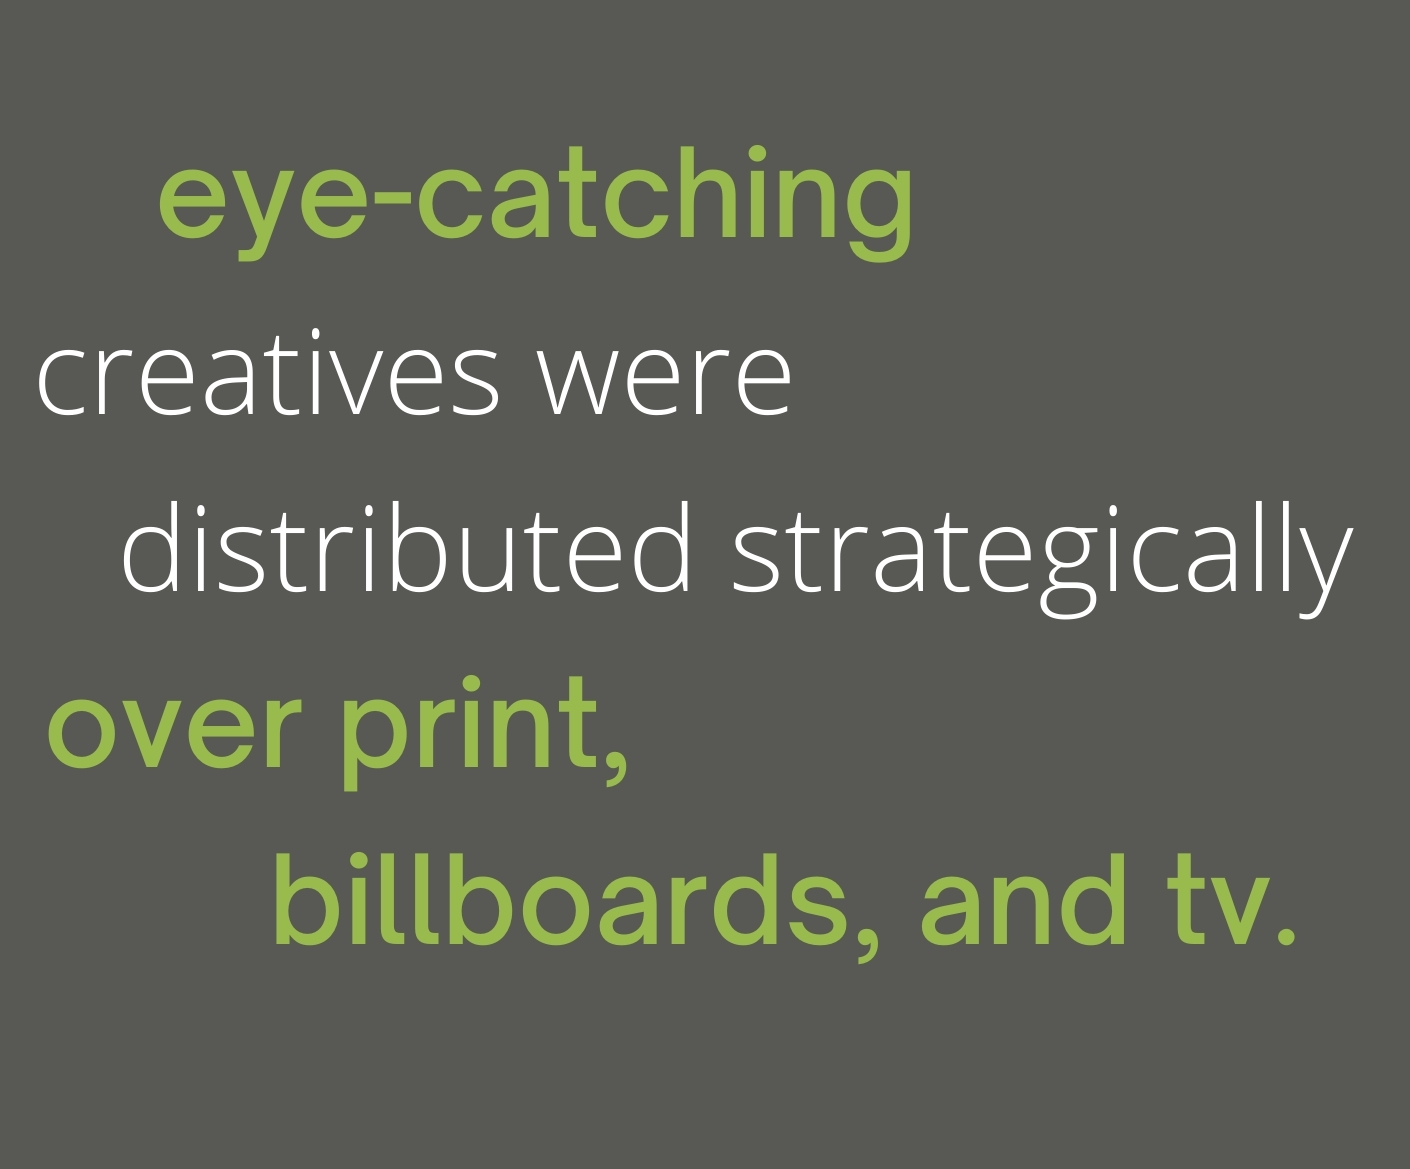 eye-catching creatives were distributed strategically over print, billboards, and tv.